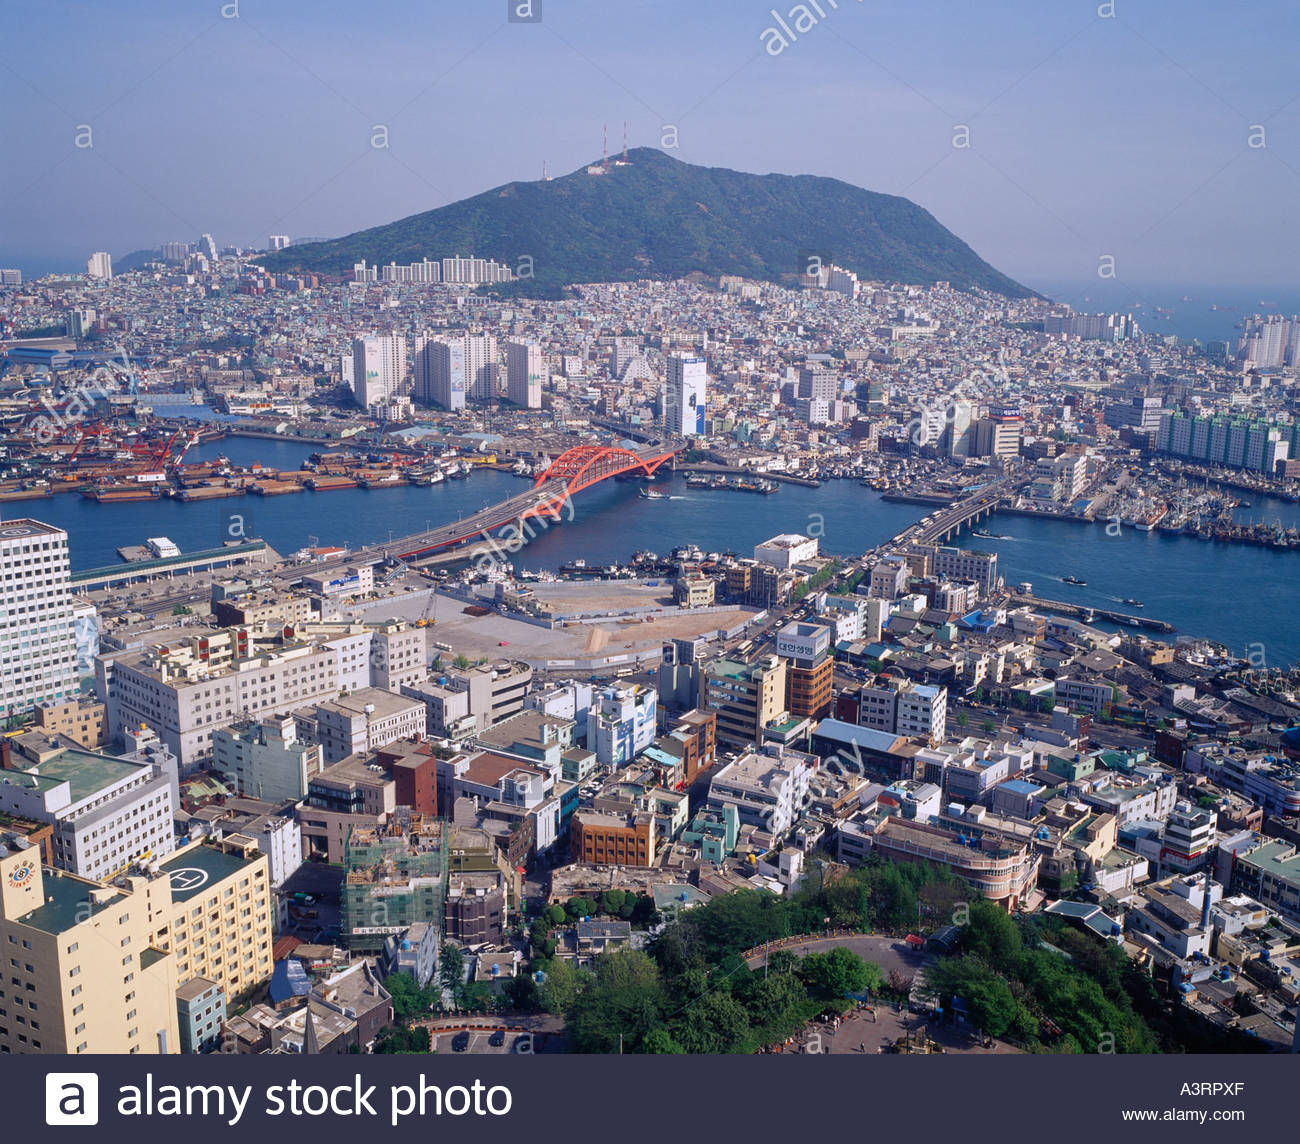 Pusan Port View Pusan South Korea Stock Photo, Royalty